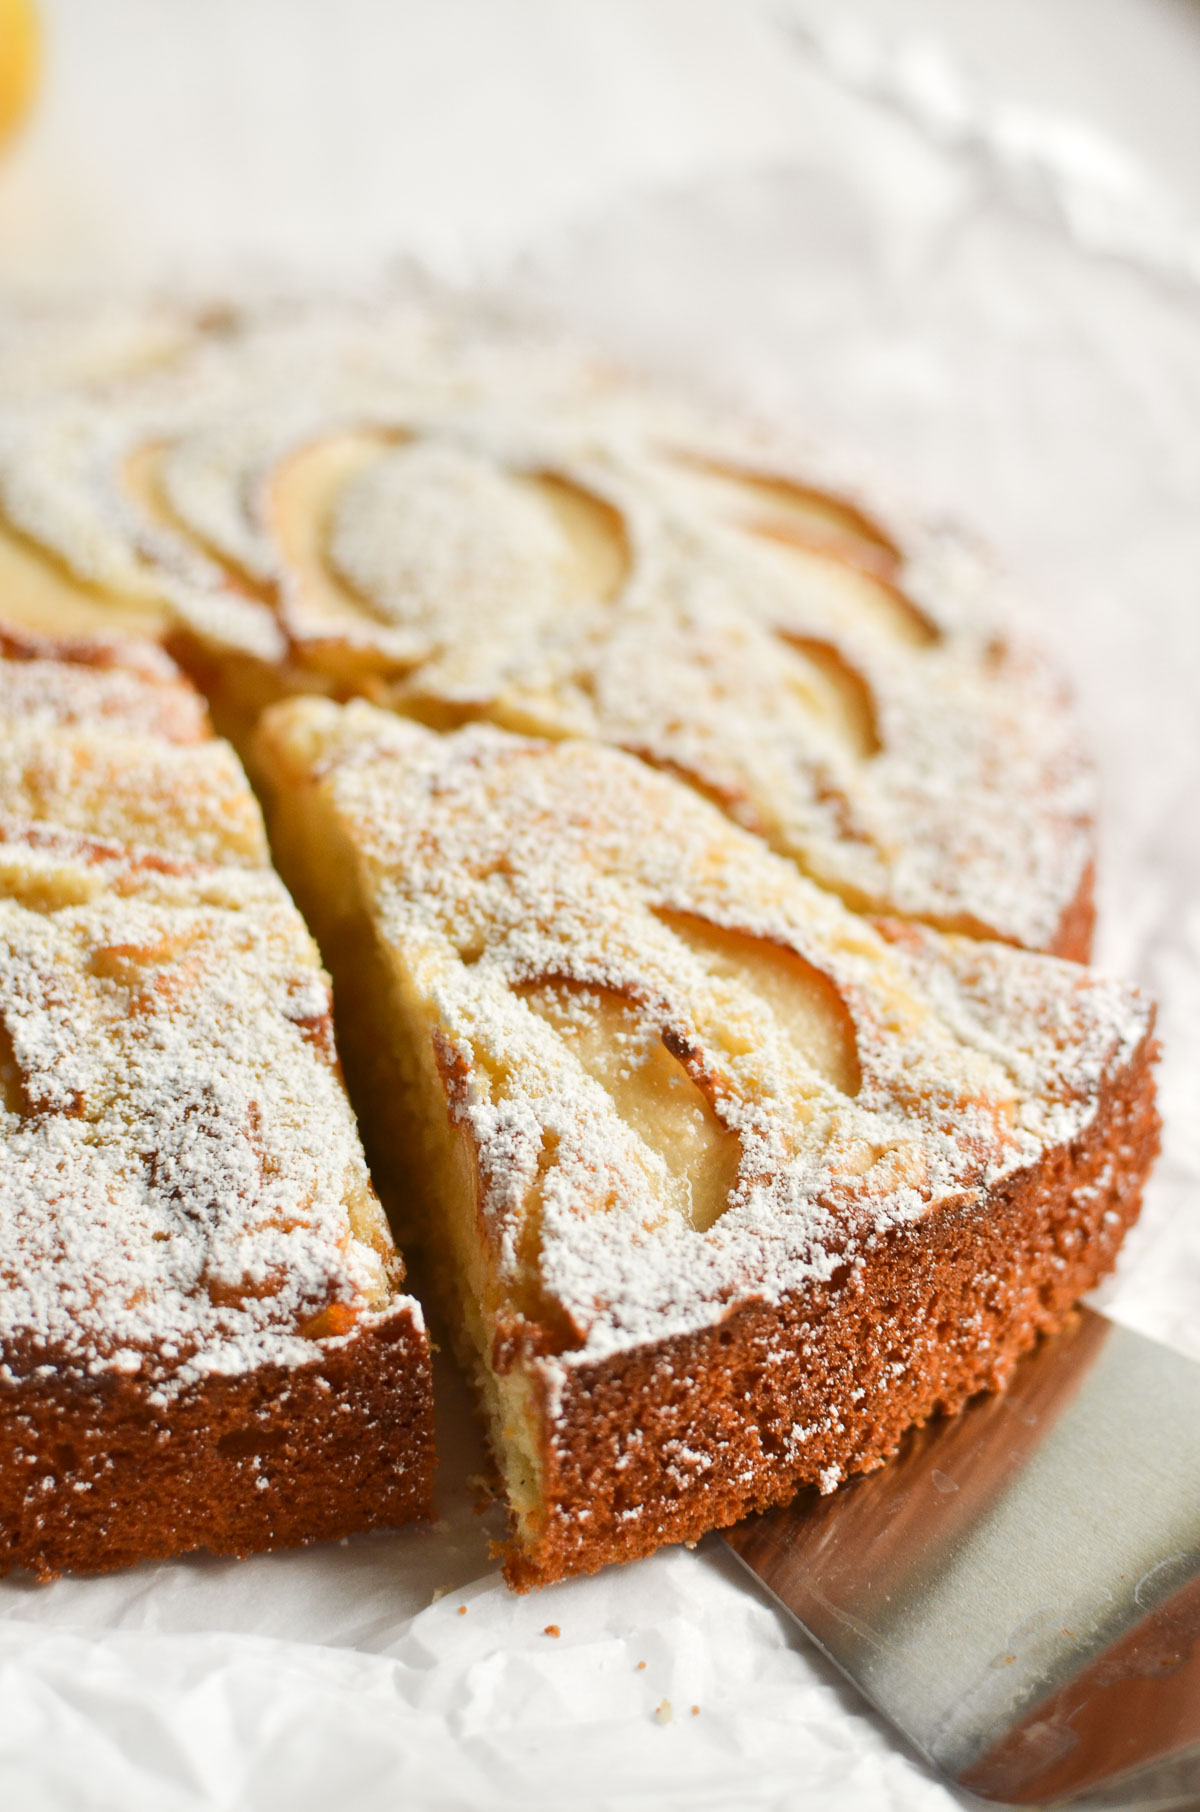 Fresh Ginger and Pear Cake with a slice being taken out.